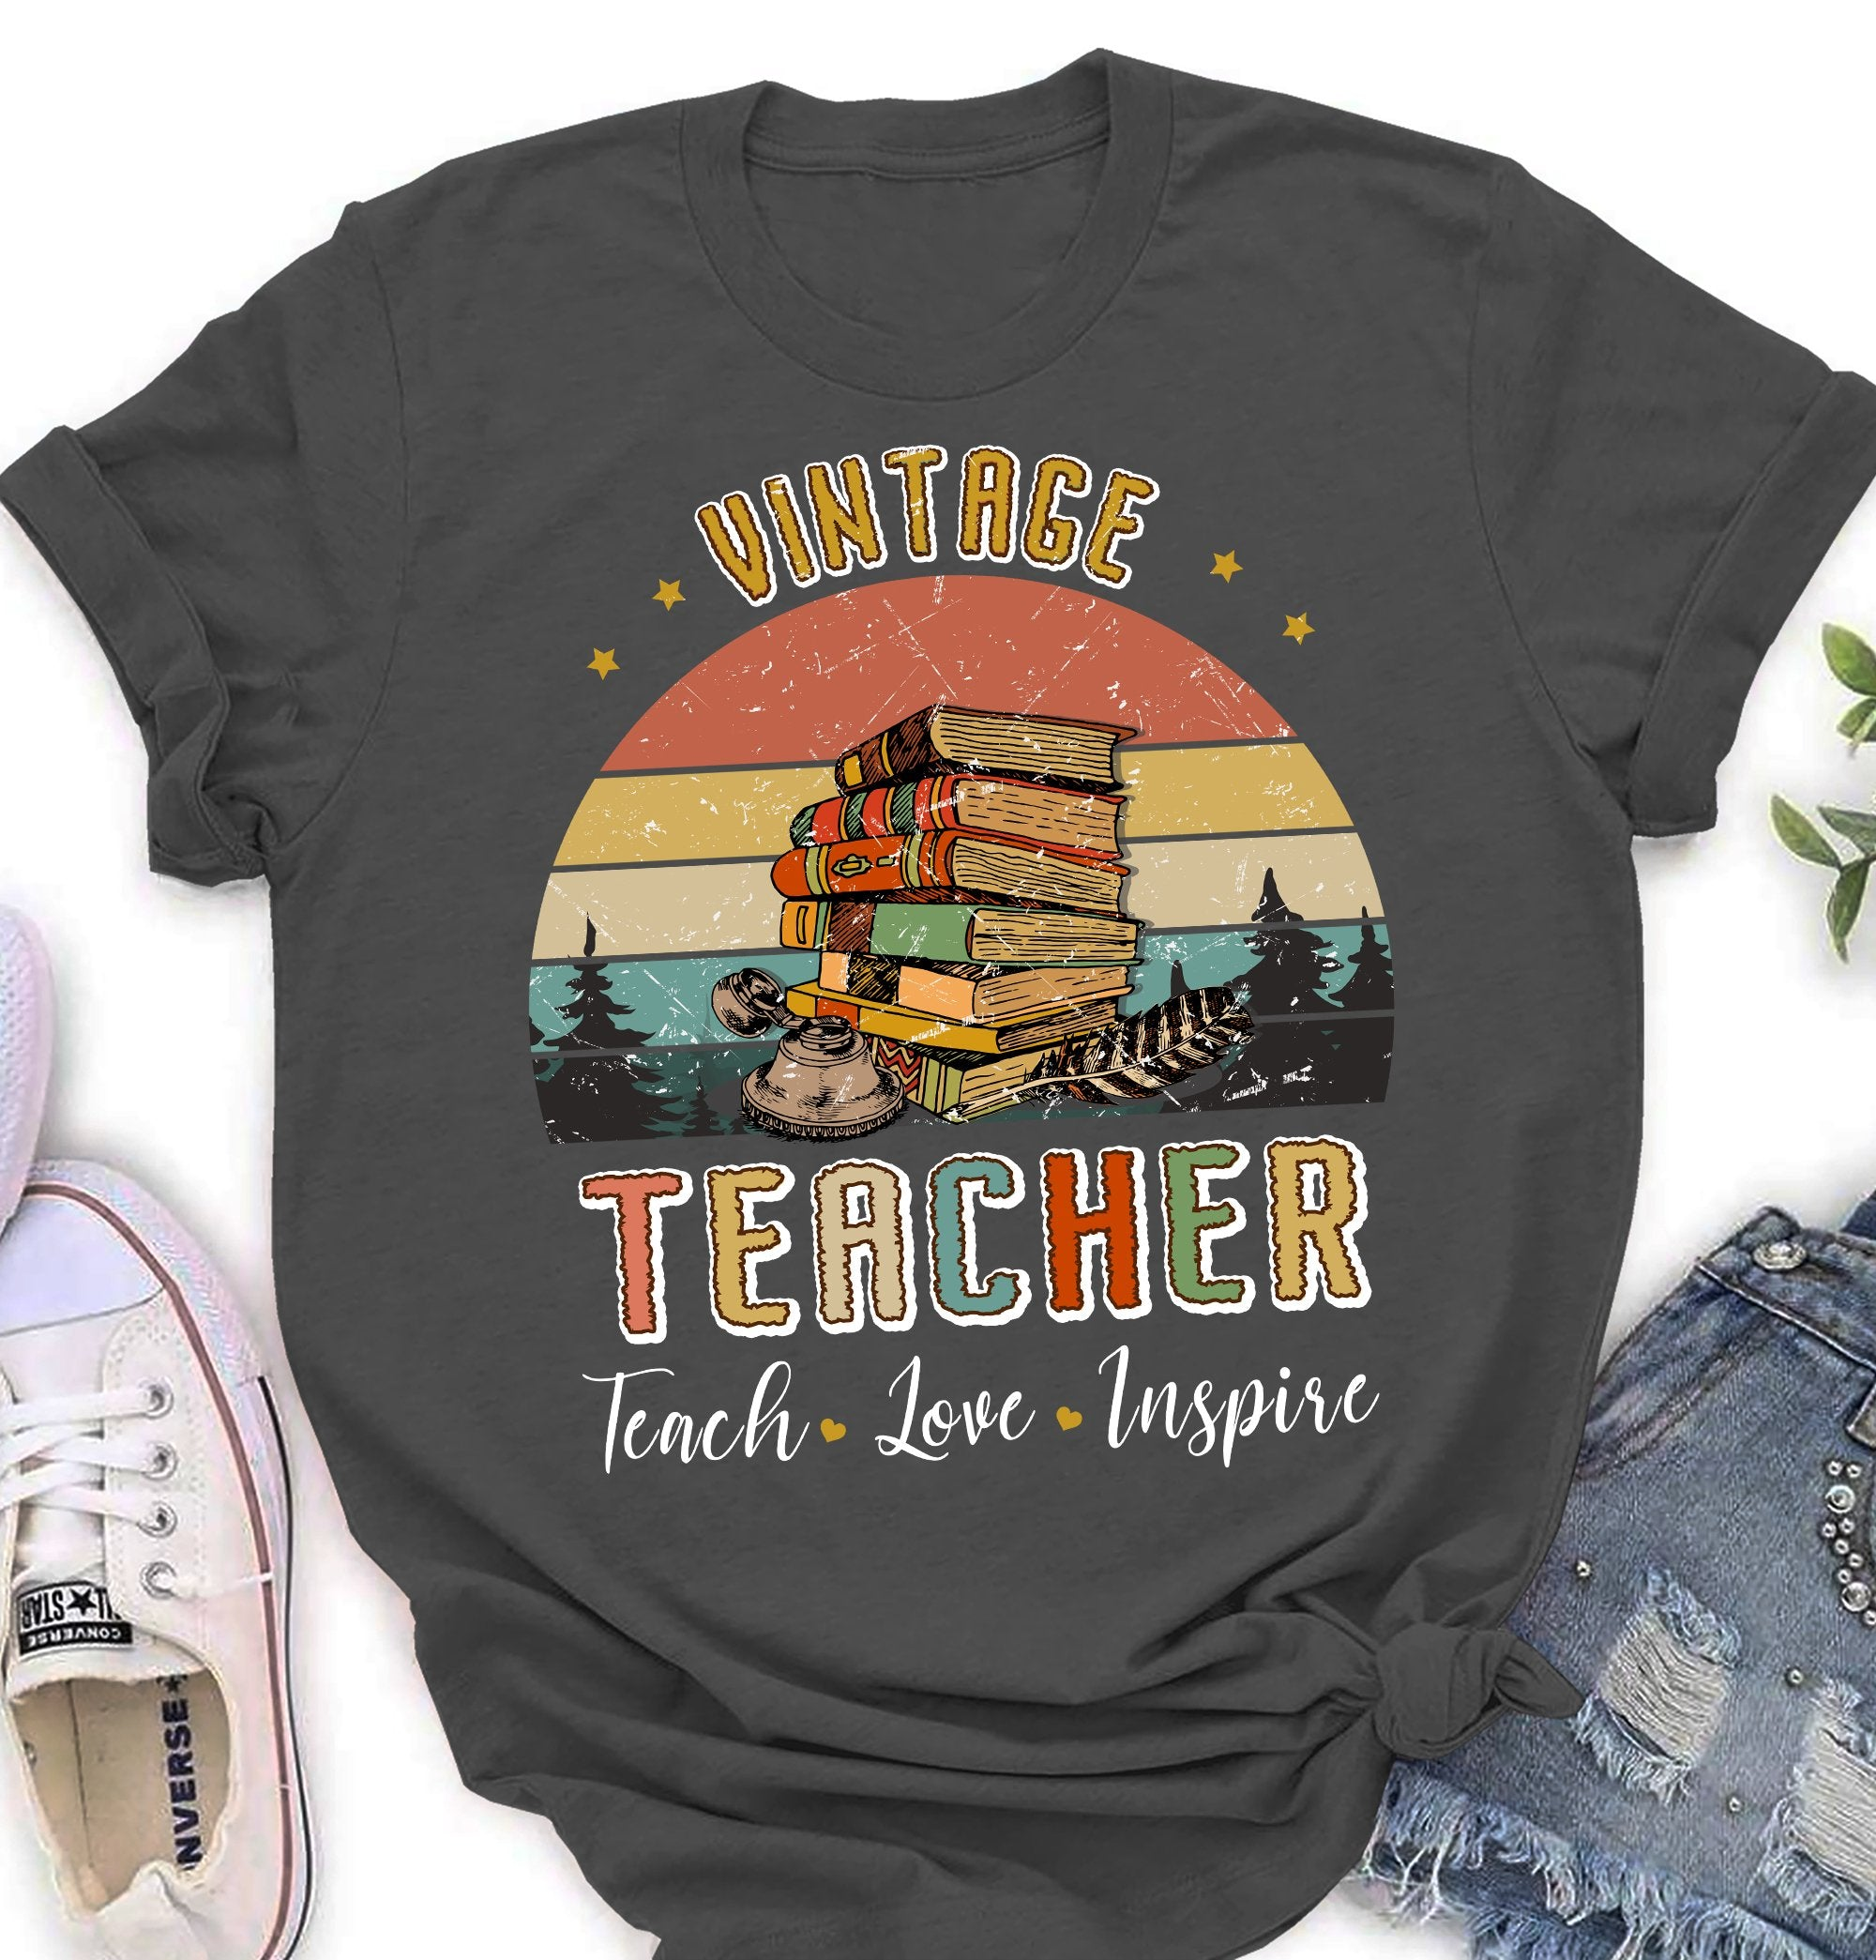 Vintage Teacher - Classic Unisex T-shirt - Gifts For Teacher